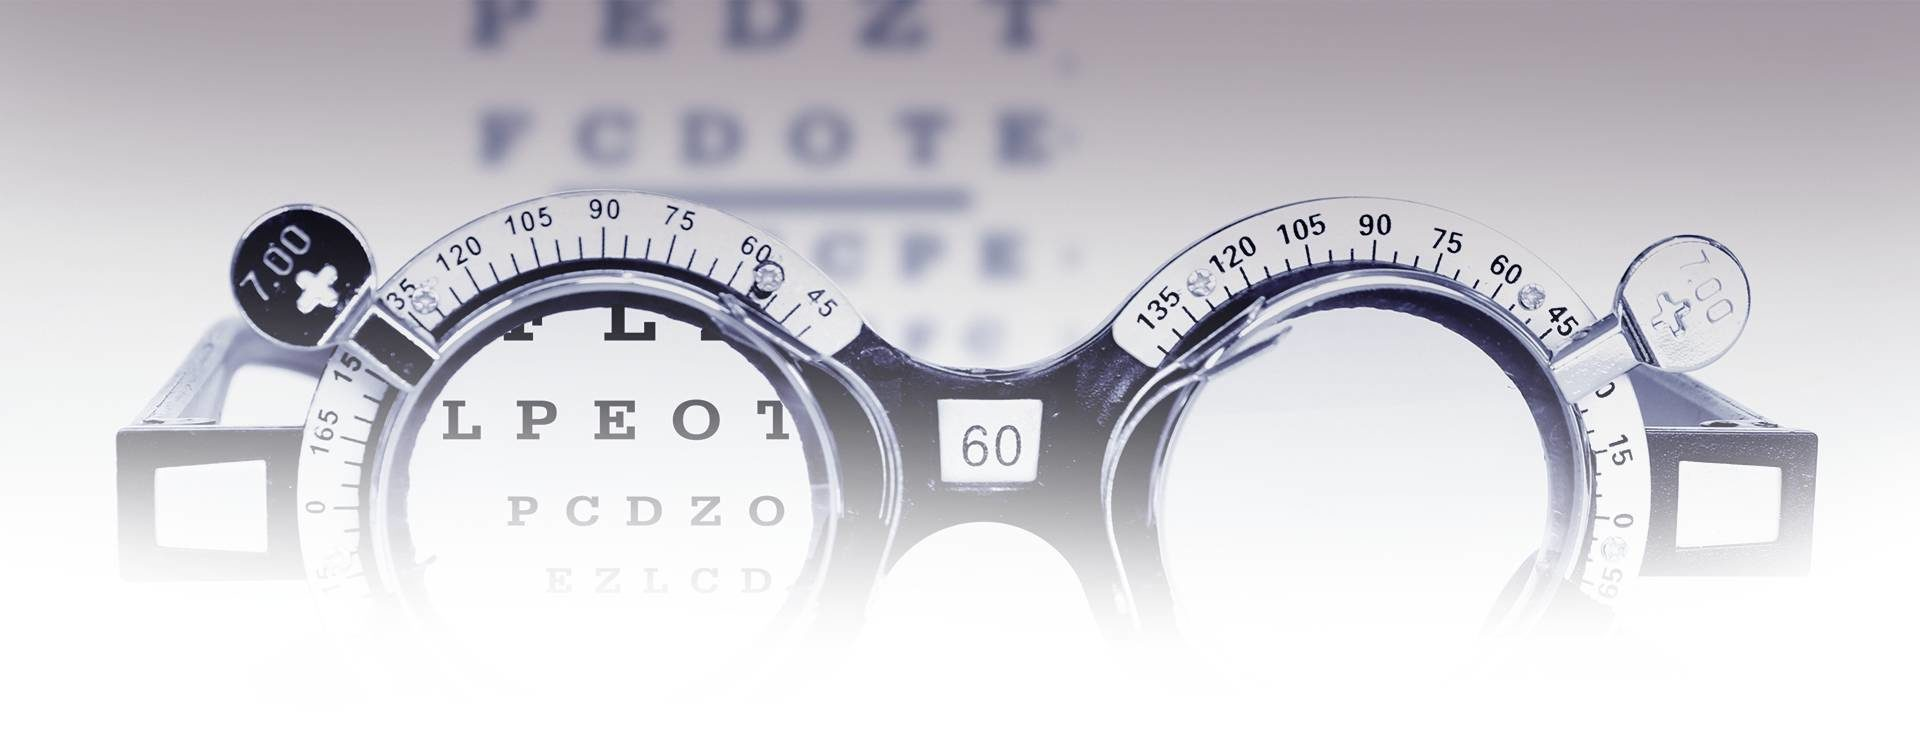 Eye Refraction Test Performed During an Eye Exam